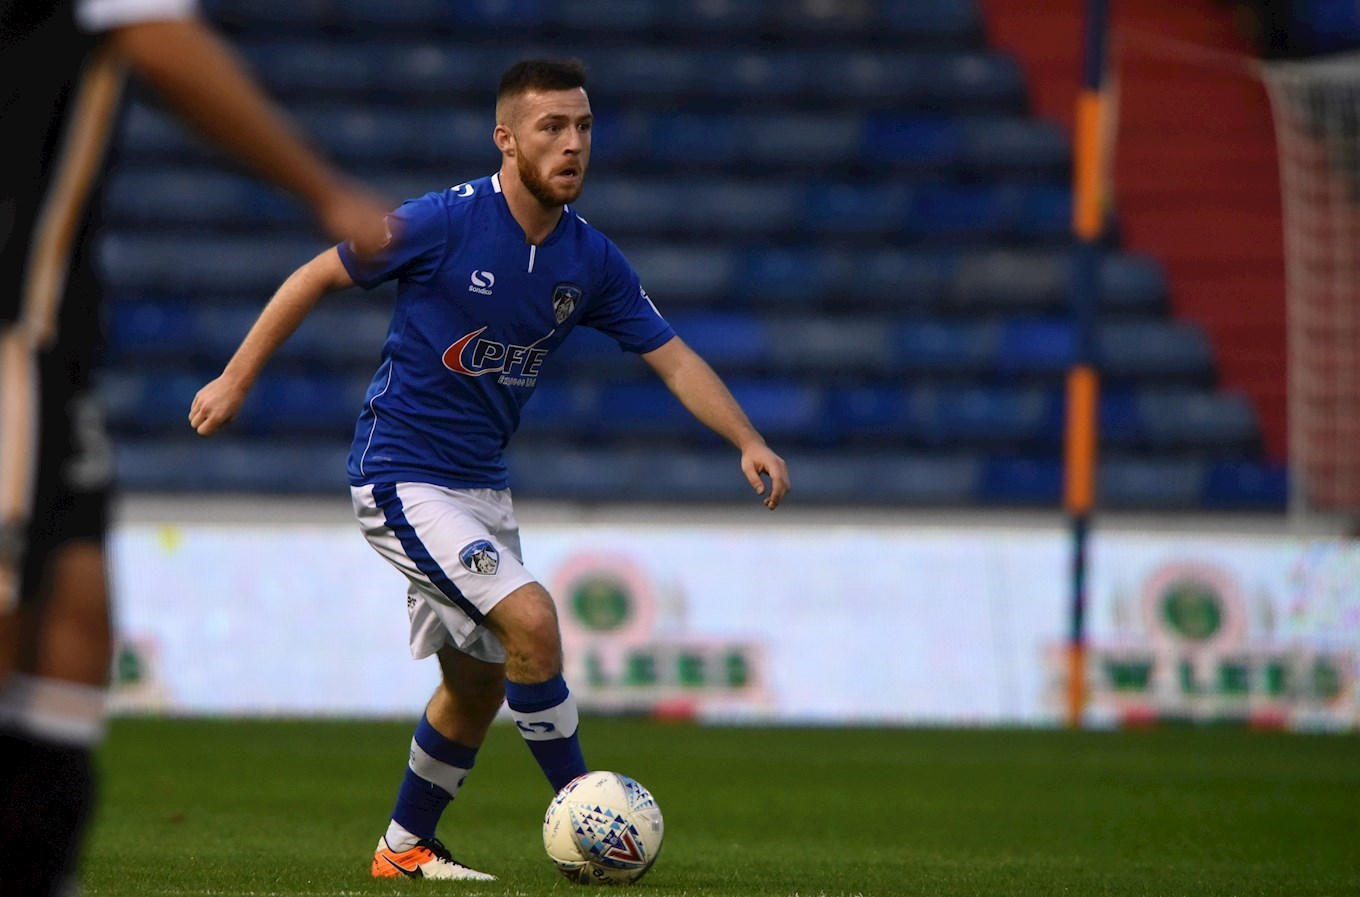 Ireland's Jack Byrne nets a screamer for Oldham as FOUR Irish players score in one game